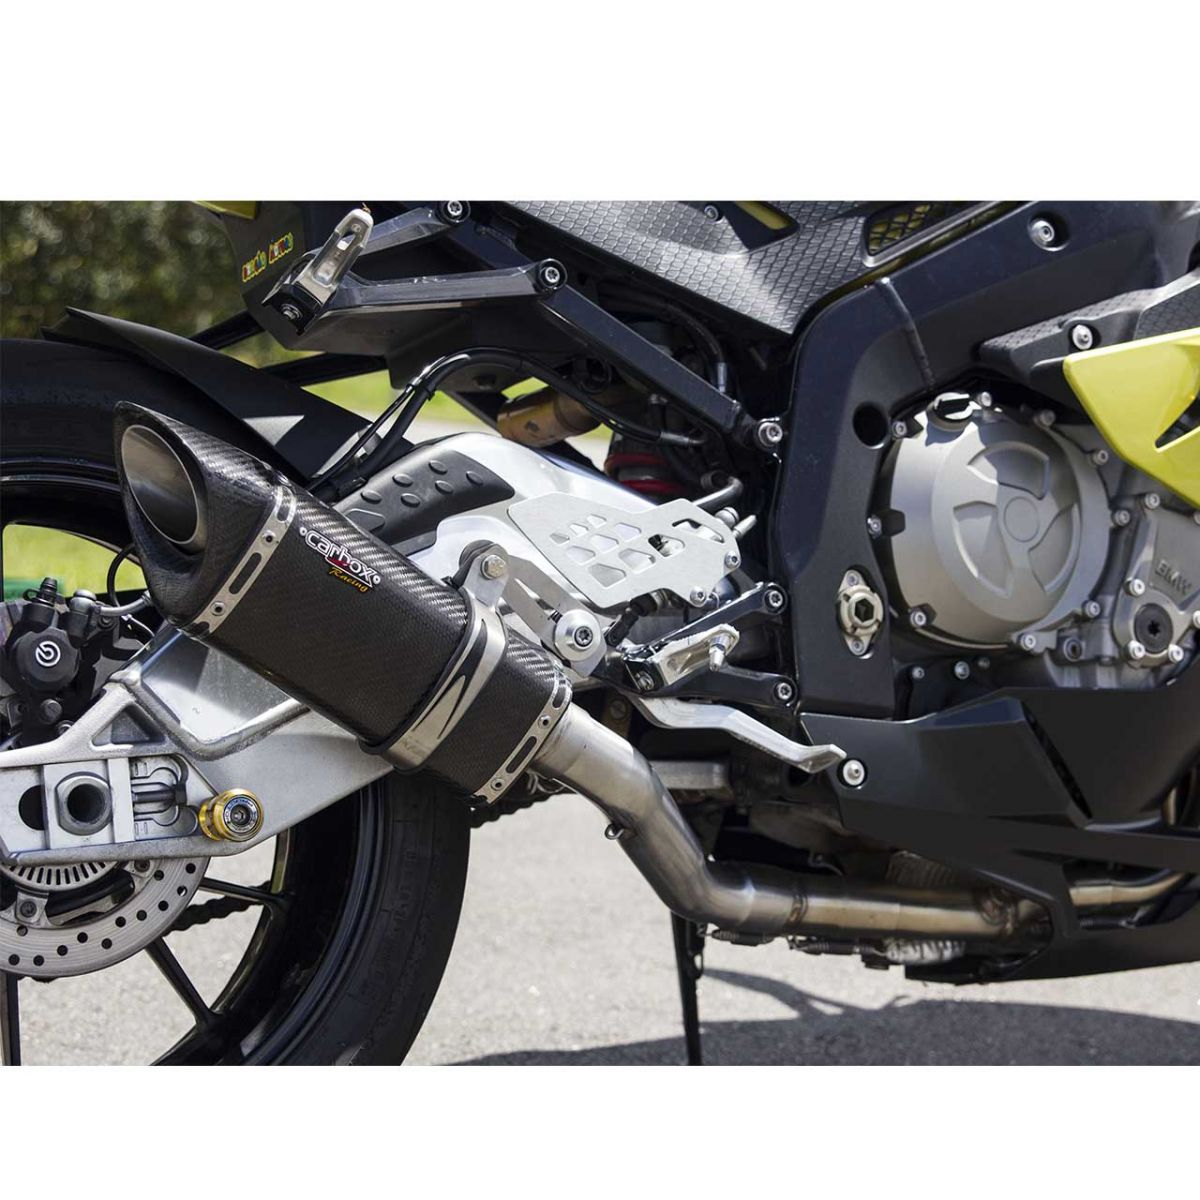 Ponteira Escape Full 4x2x1 Scorpion S725 Carbon- Bmw S1000rr